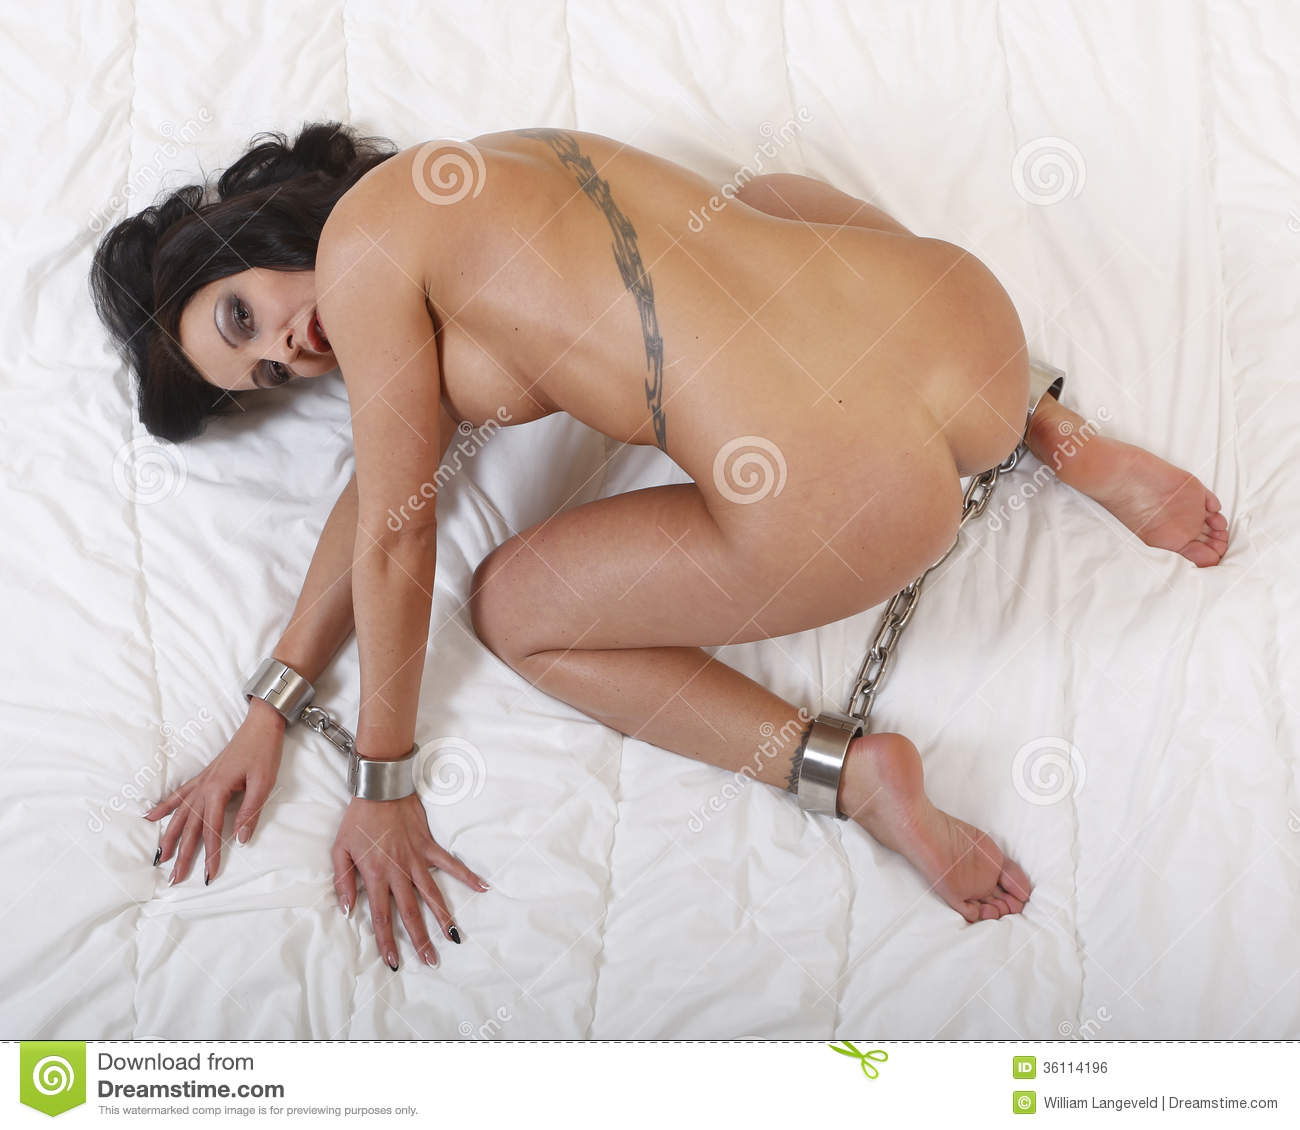 Beautful Nude Or Naked Woman Handcuffed Royalty Free Stock -9821